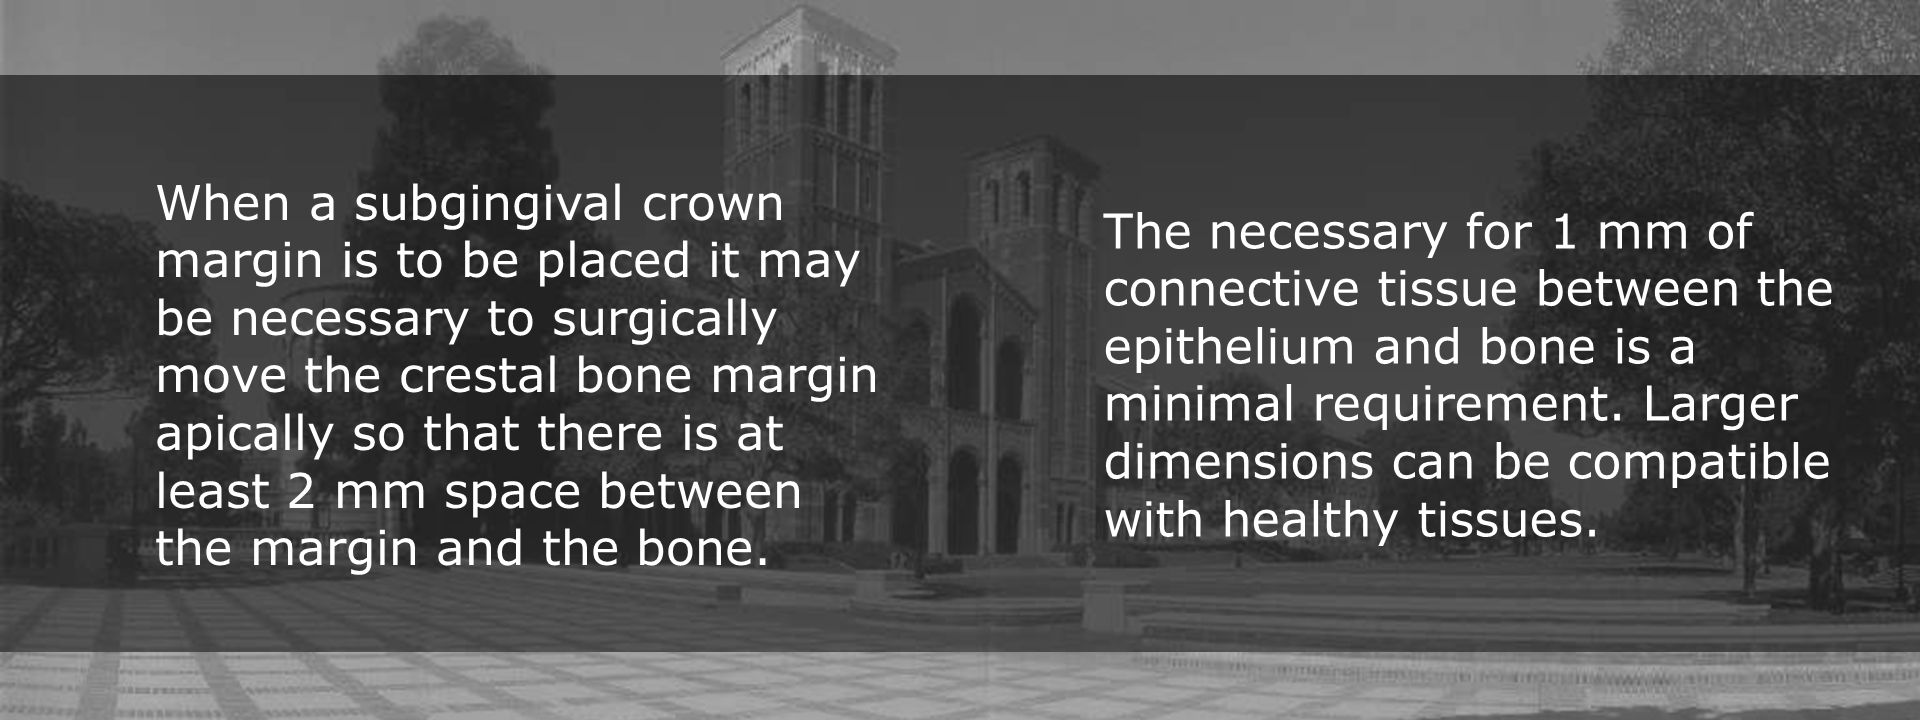 When a subgingival crown margin is to be placed it may be necessary to surgically move the crestal bone margin apically so that there is at least 2 mm space between the margin and the bone.